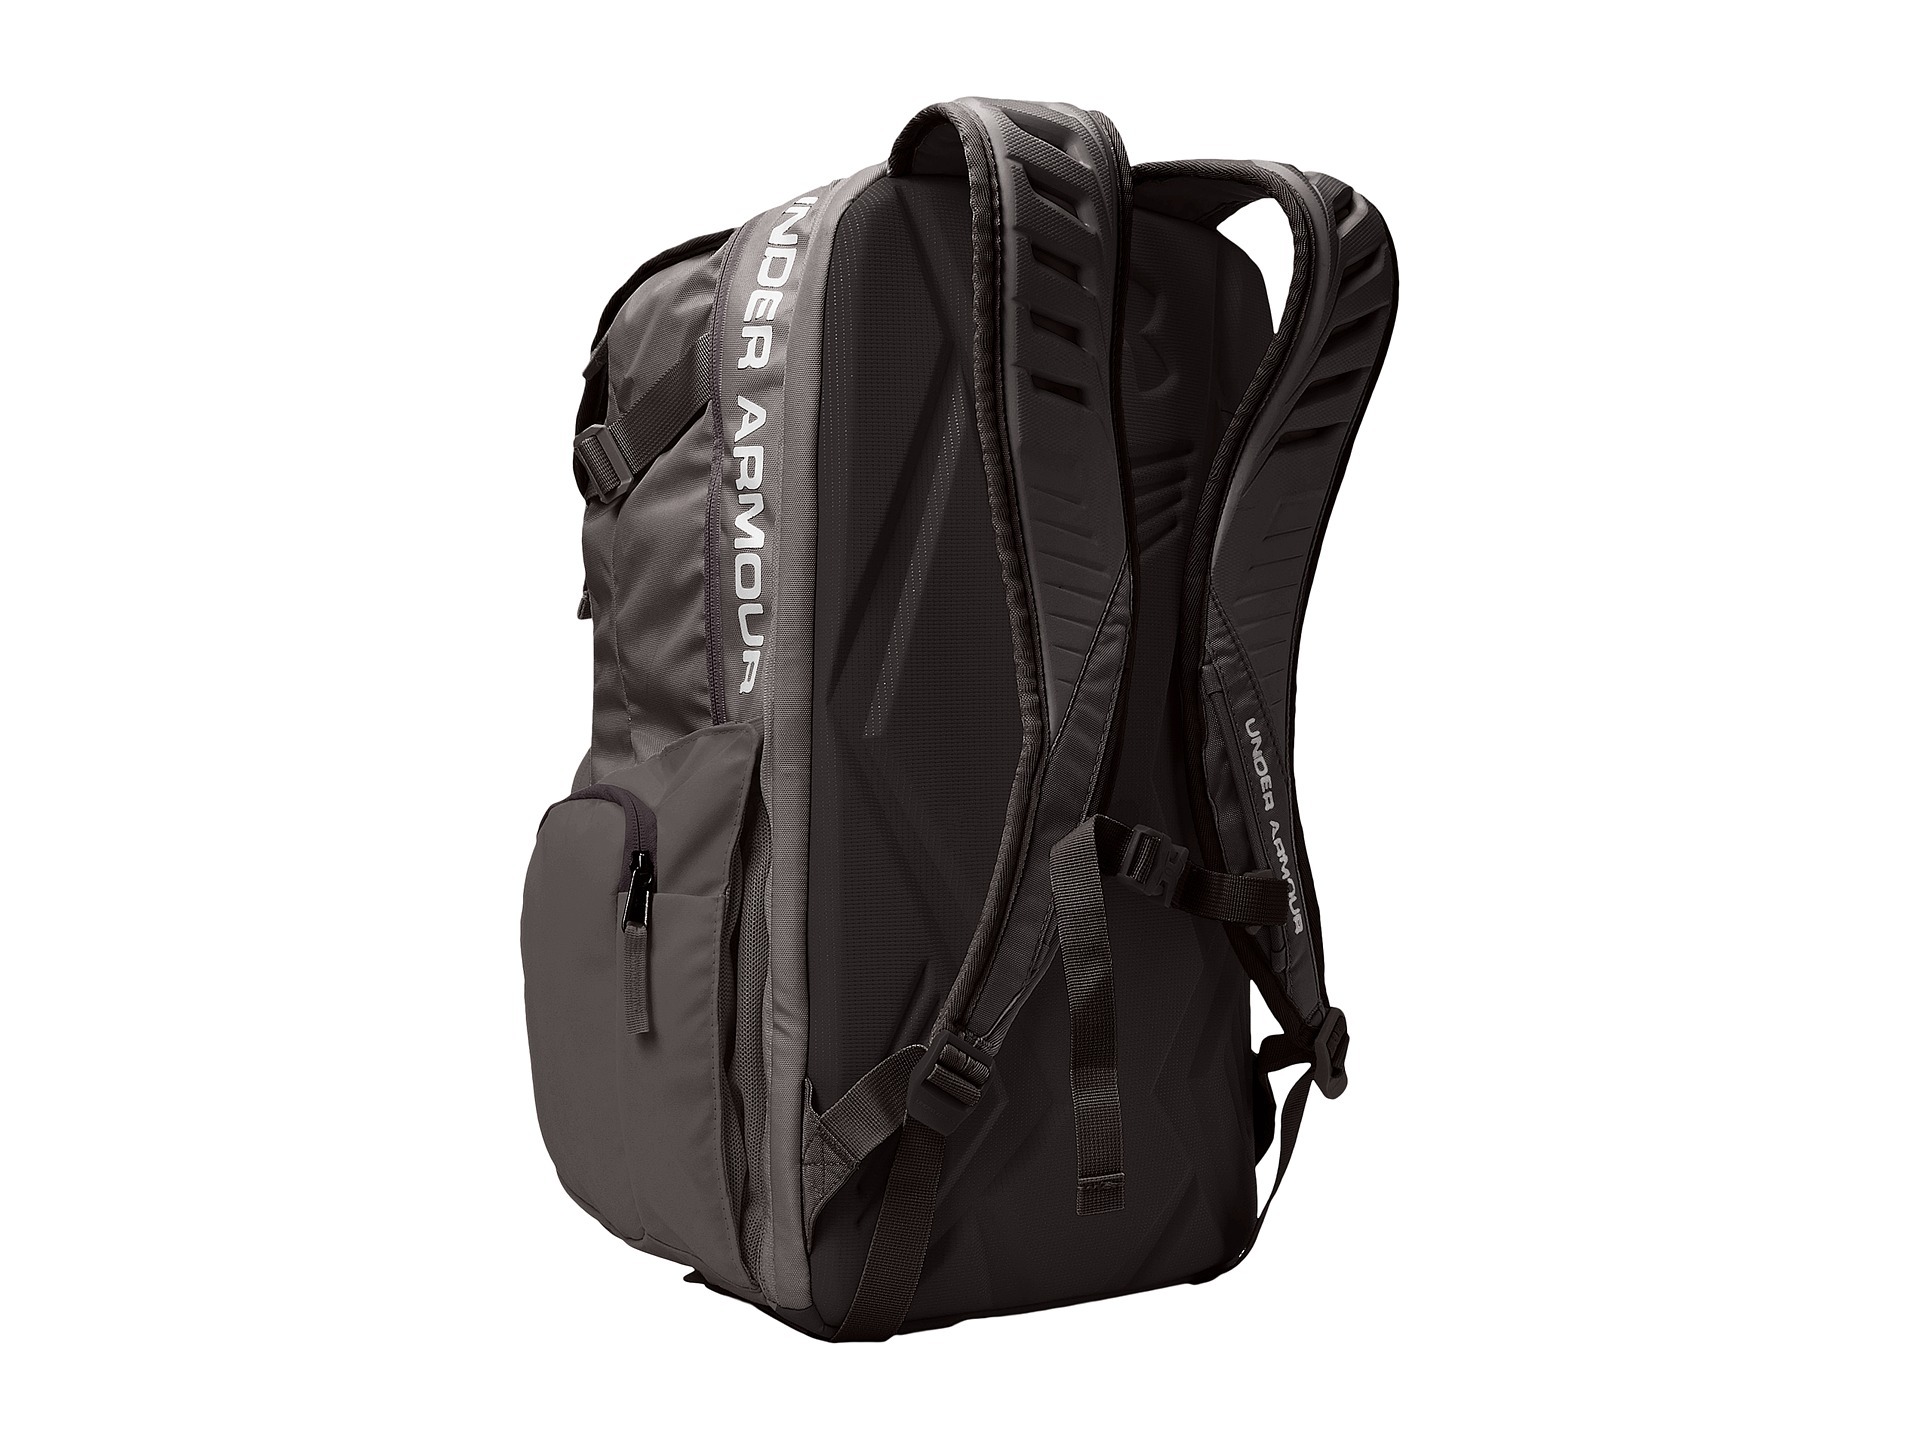 sling backpack under armour cheap   OFF63% The Largest Catalog Discounts 1cc700d10940a